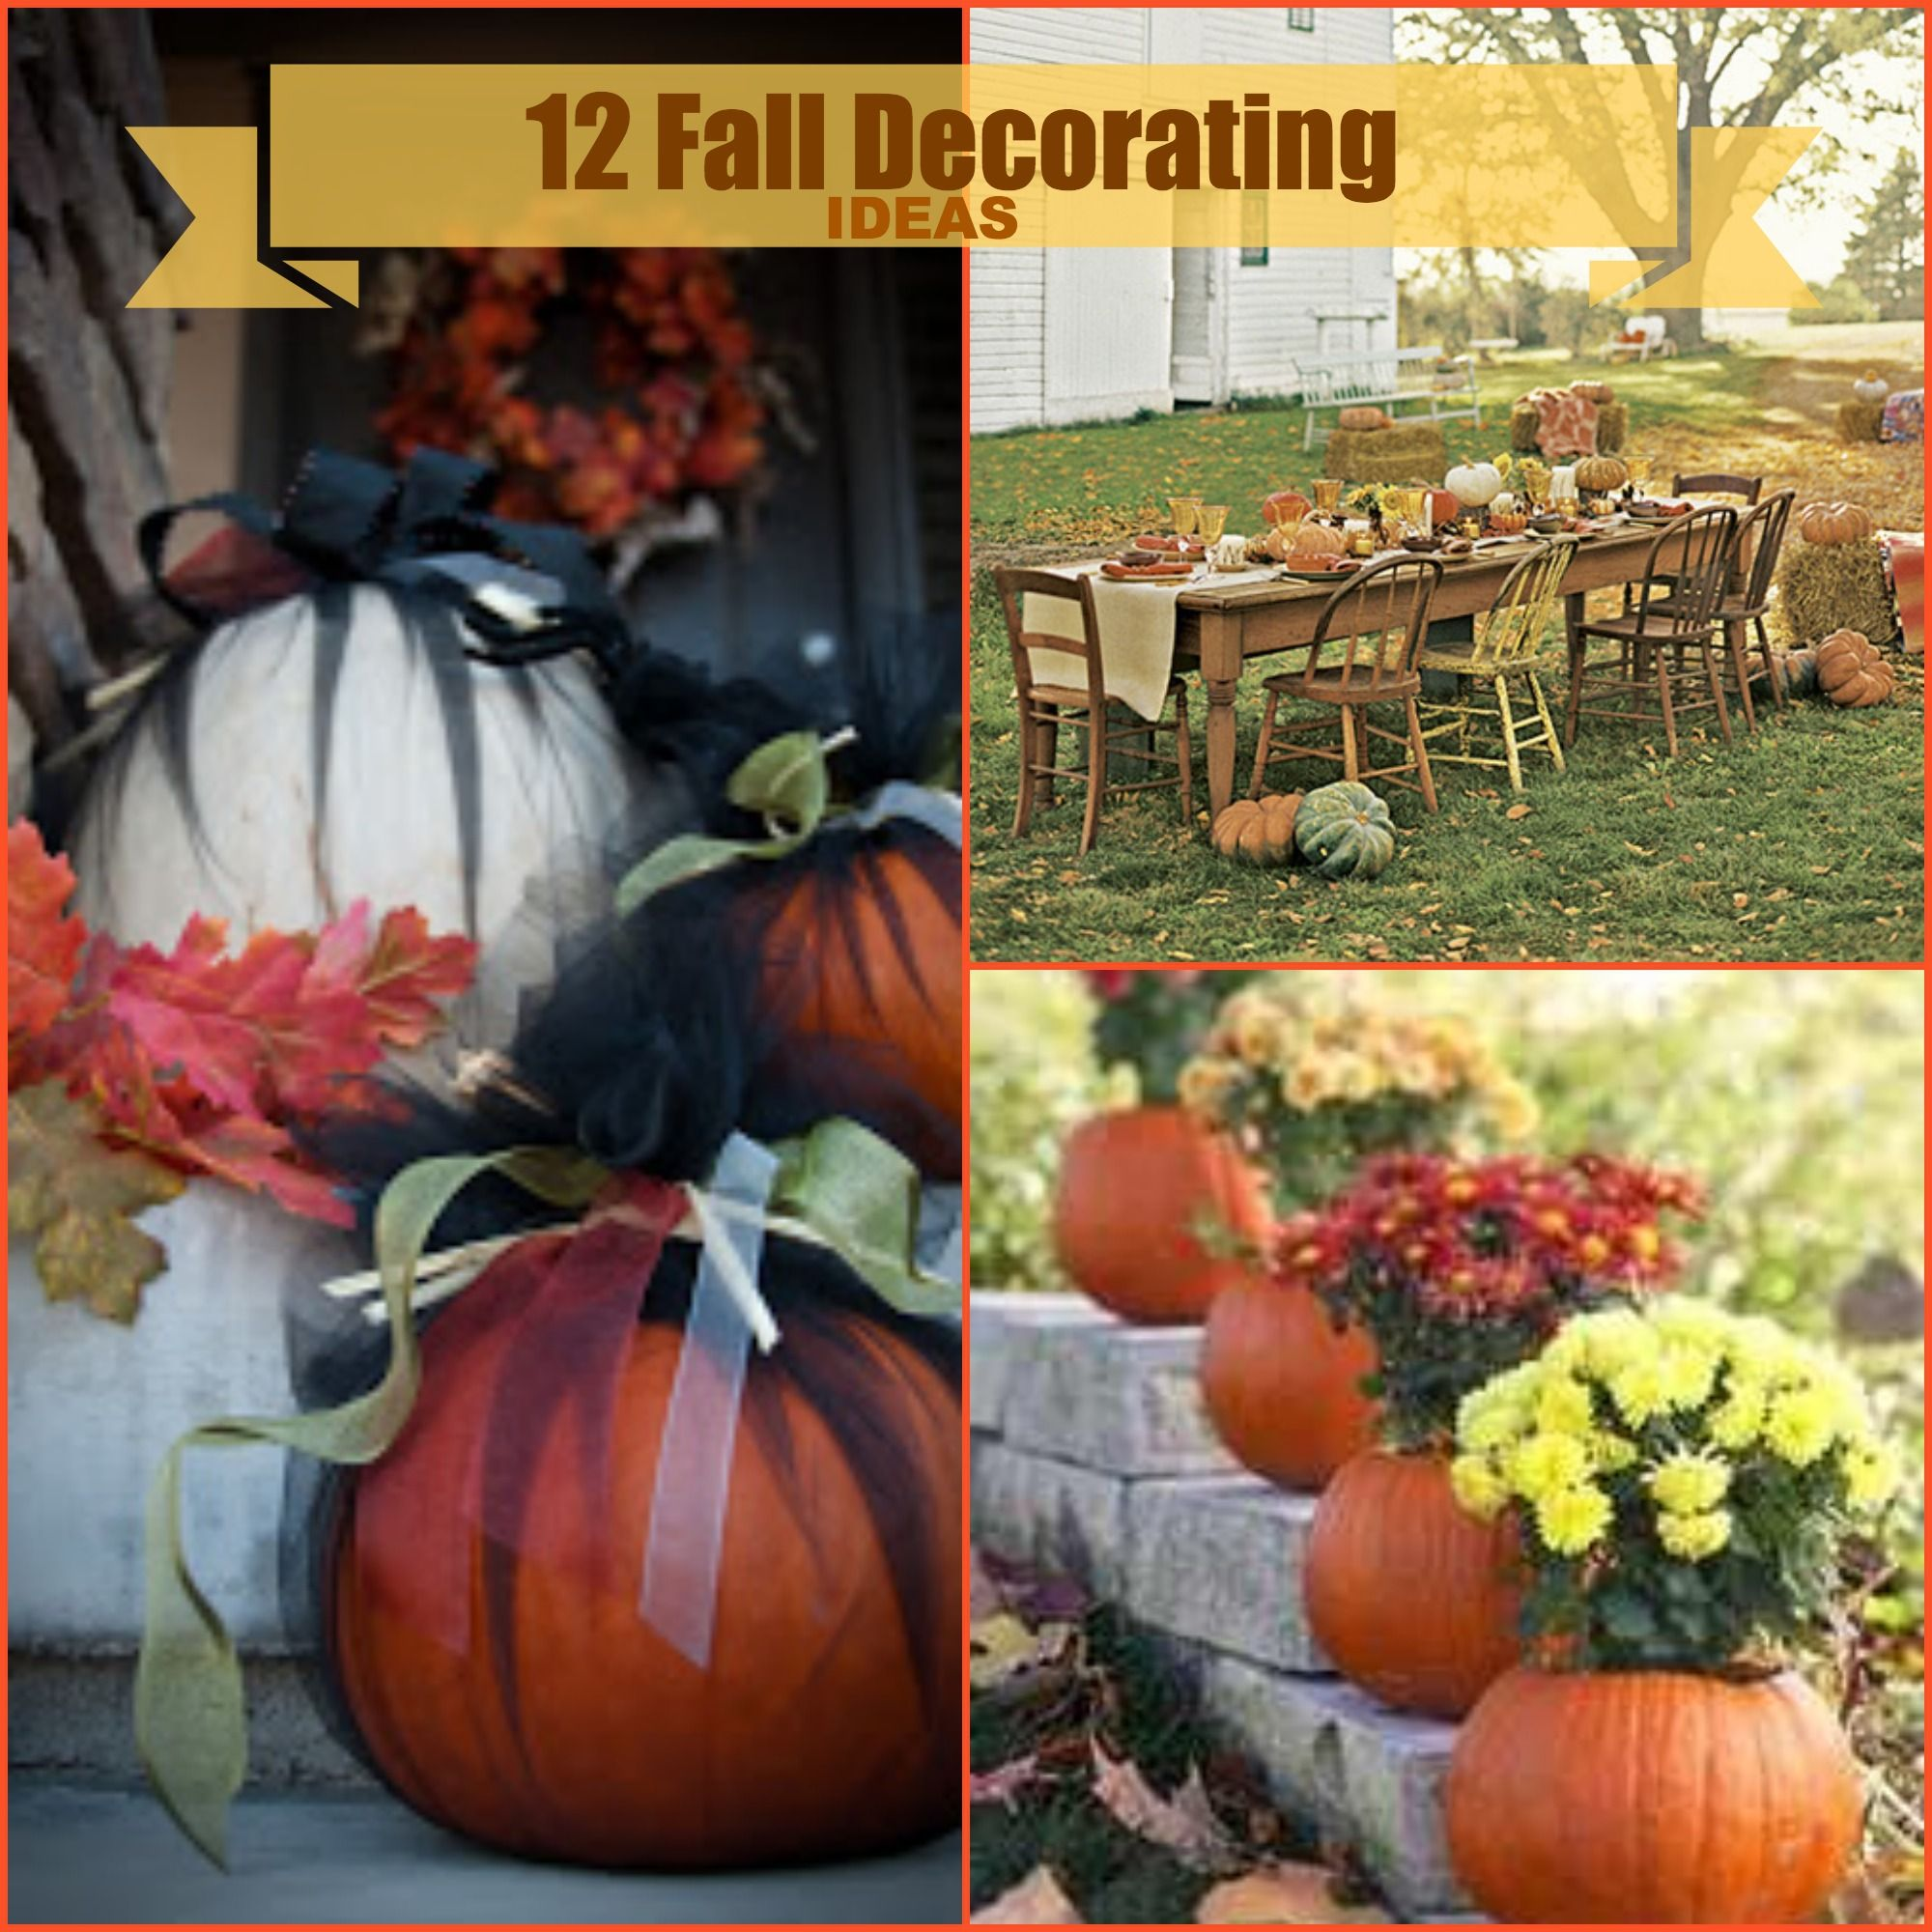 Fall decorating ideas on pinterest - Decorating For The Fall Season